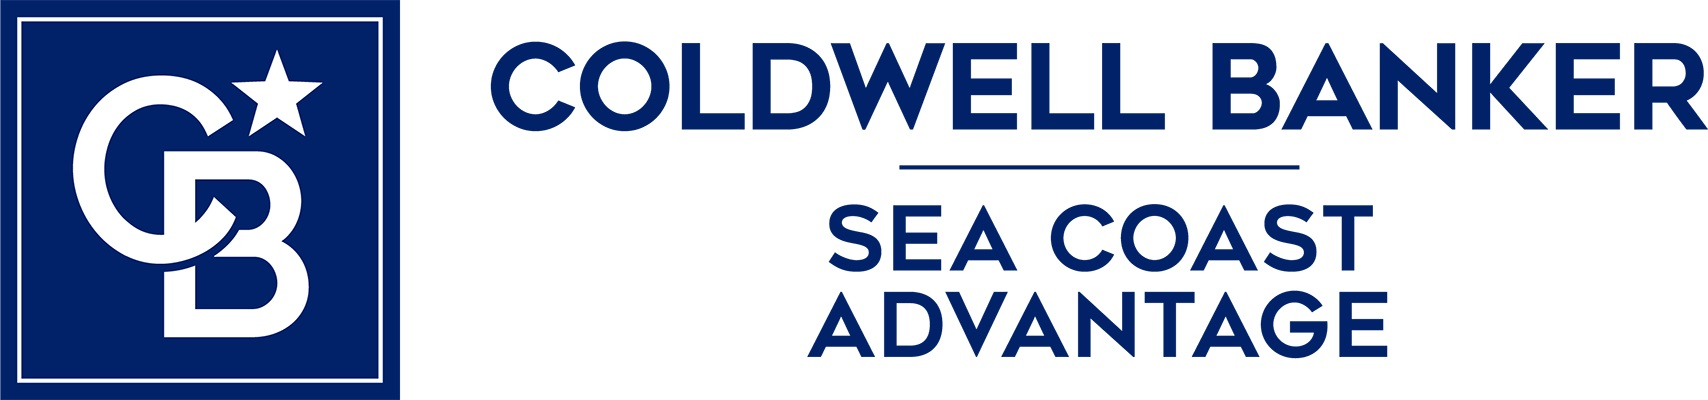 Mike Neville - Coldwell Banker Sea Coast Advantage Realty